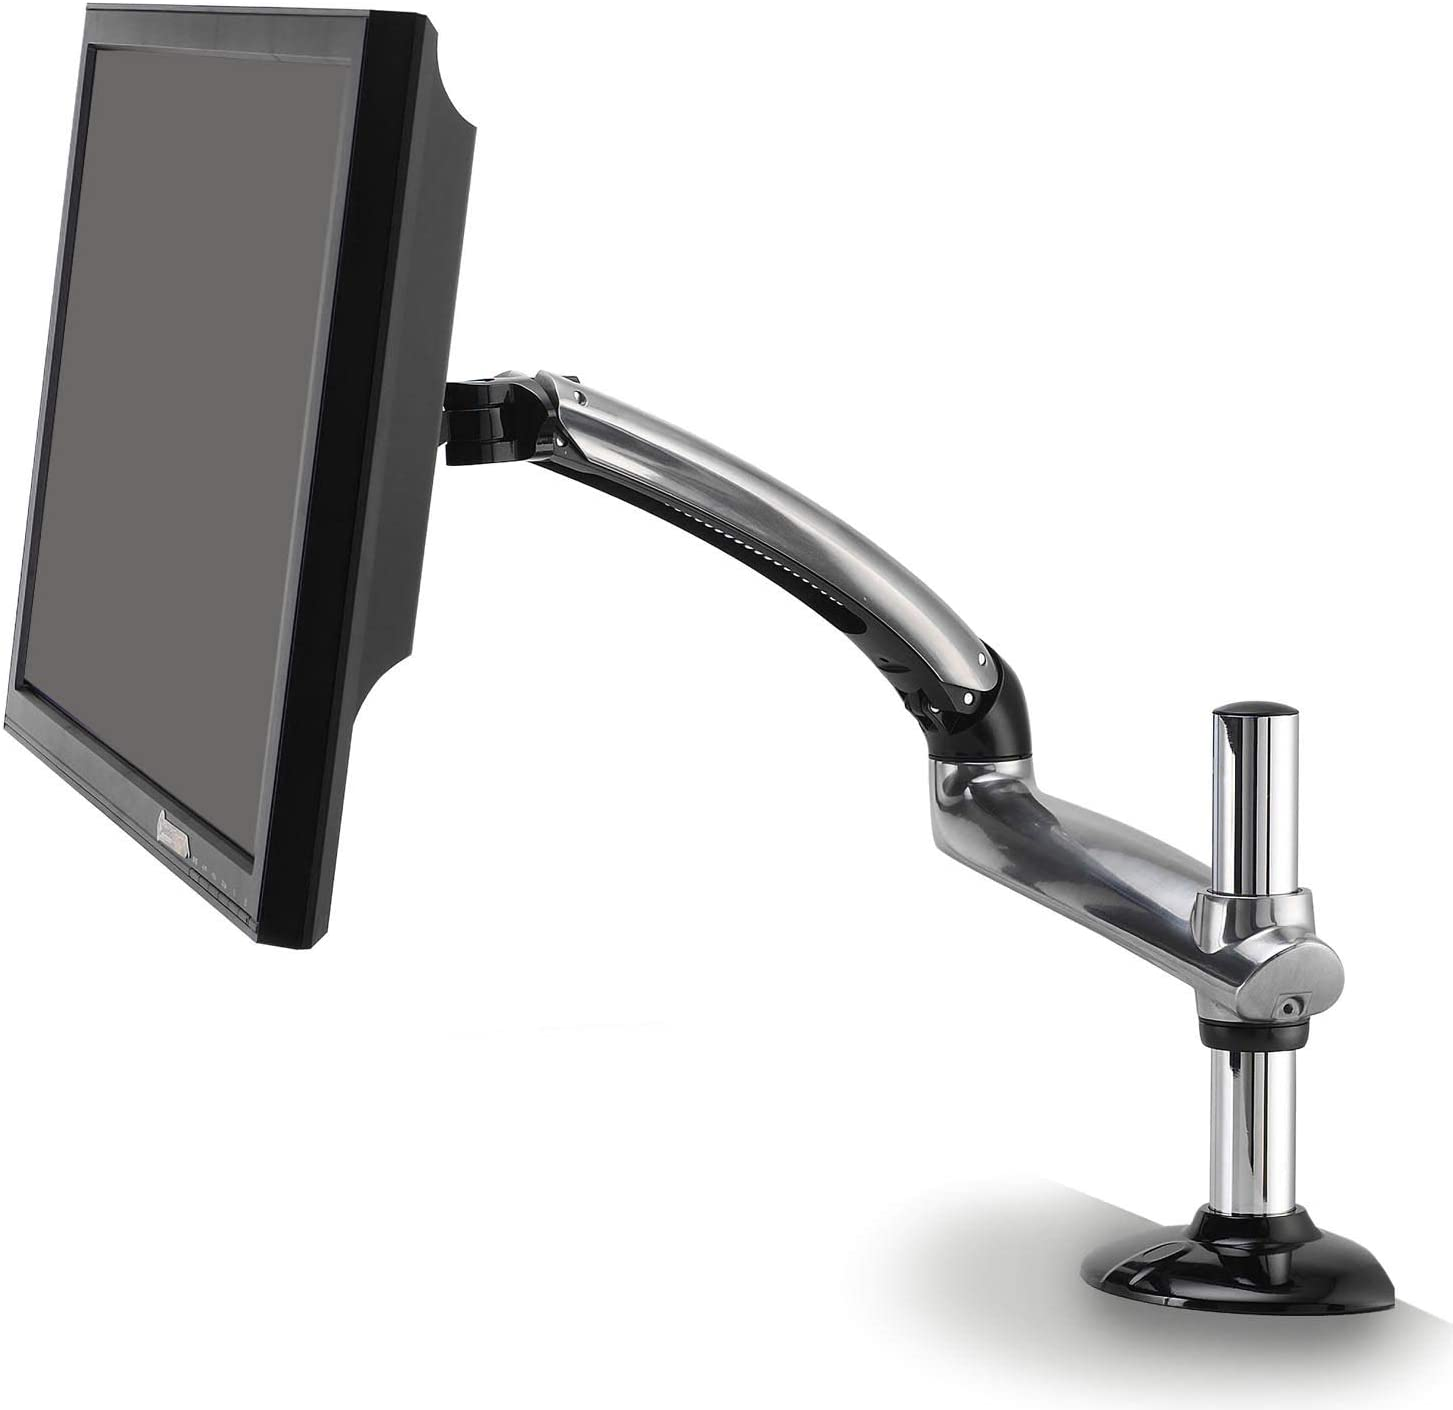 Ergotech Single Freedom Arm, Includes Single Aluminum Articulating Arm, 8.4-17.8 lbs. Weight Capacity, Suitable for Monitors up to 27 inches, VESA Compatible 75×75, 100×100, Silver